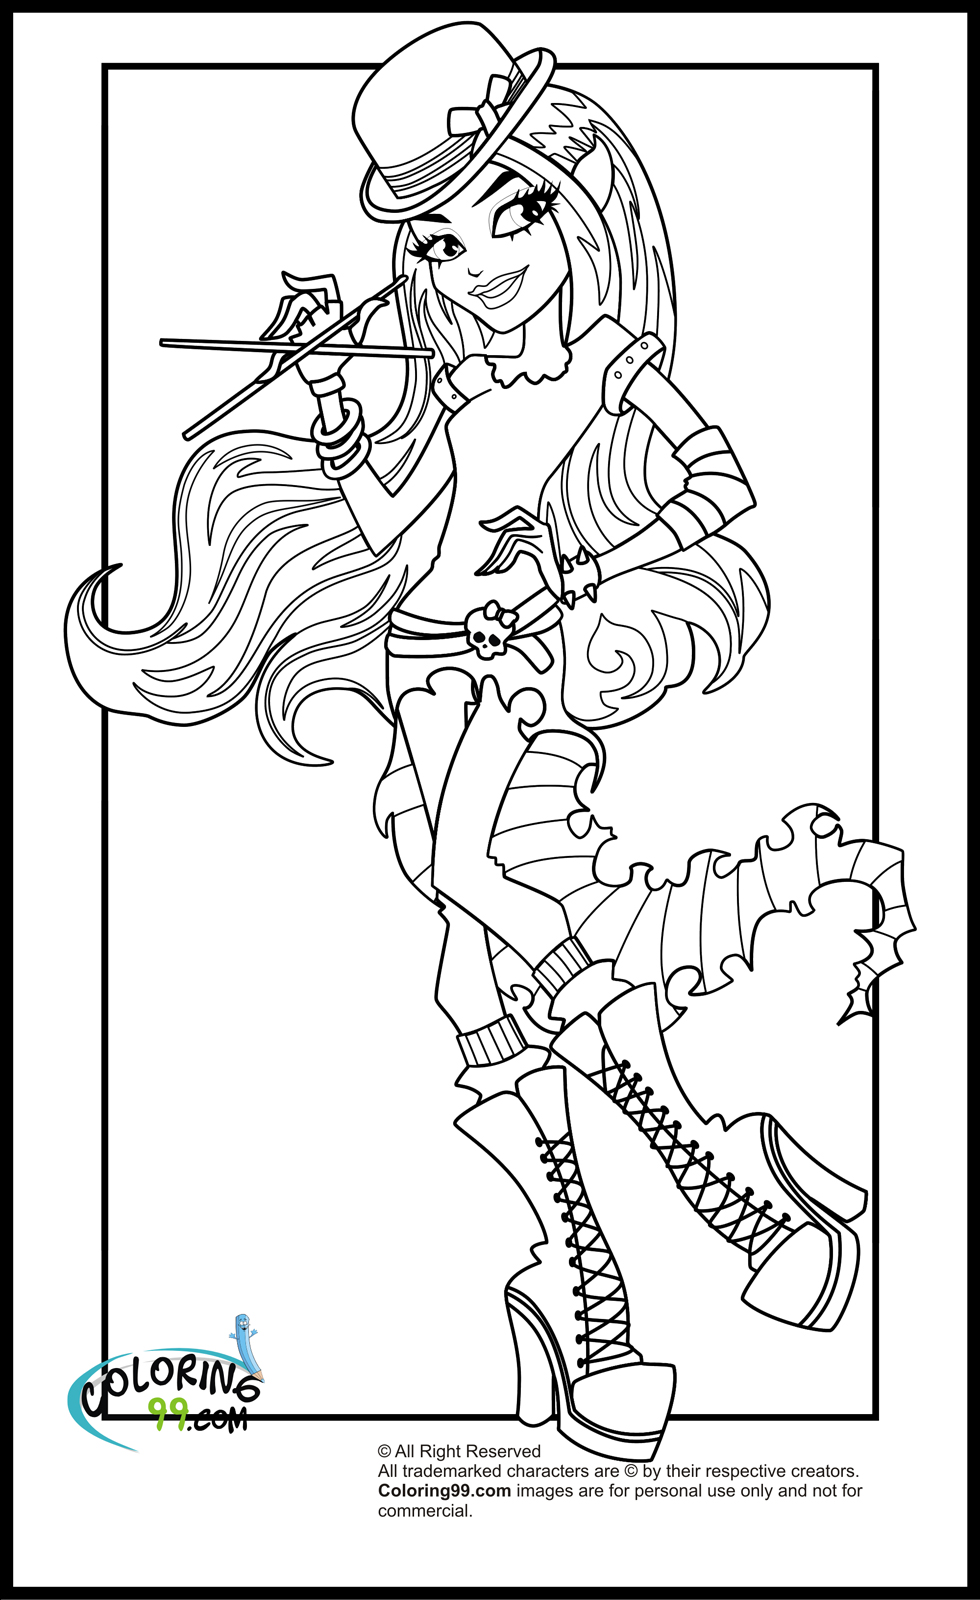 coloring monster high monster high coloring pages team colors monster coloring high